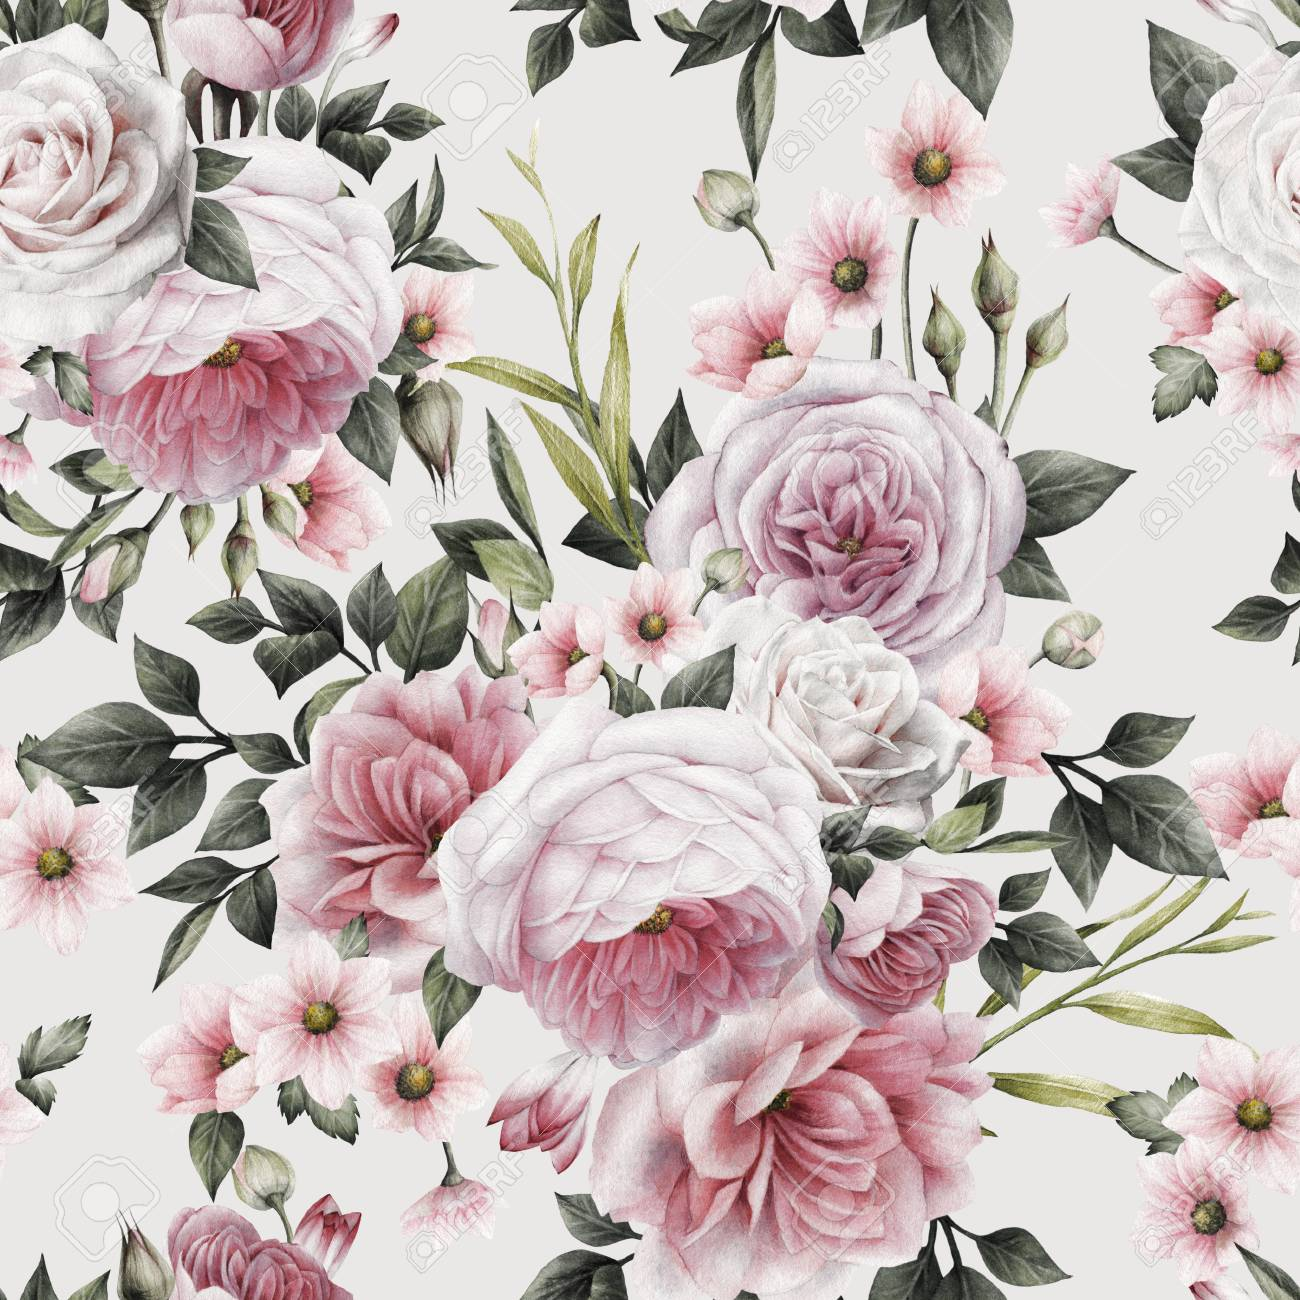 seamless floral pattern with roses, watercolor. - 96407071